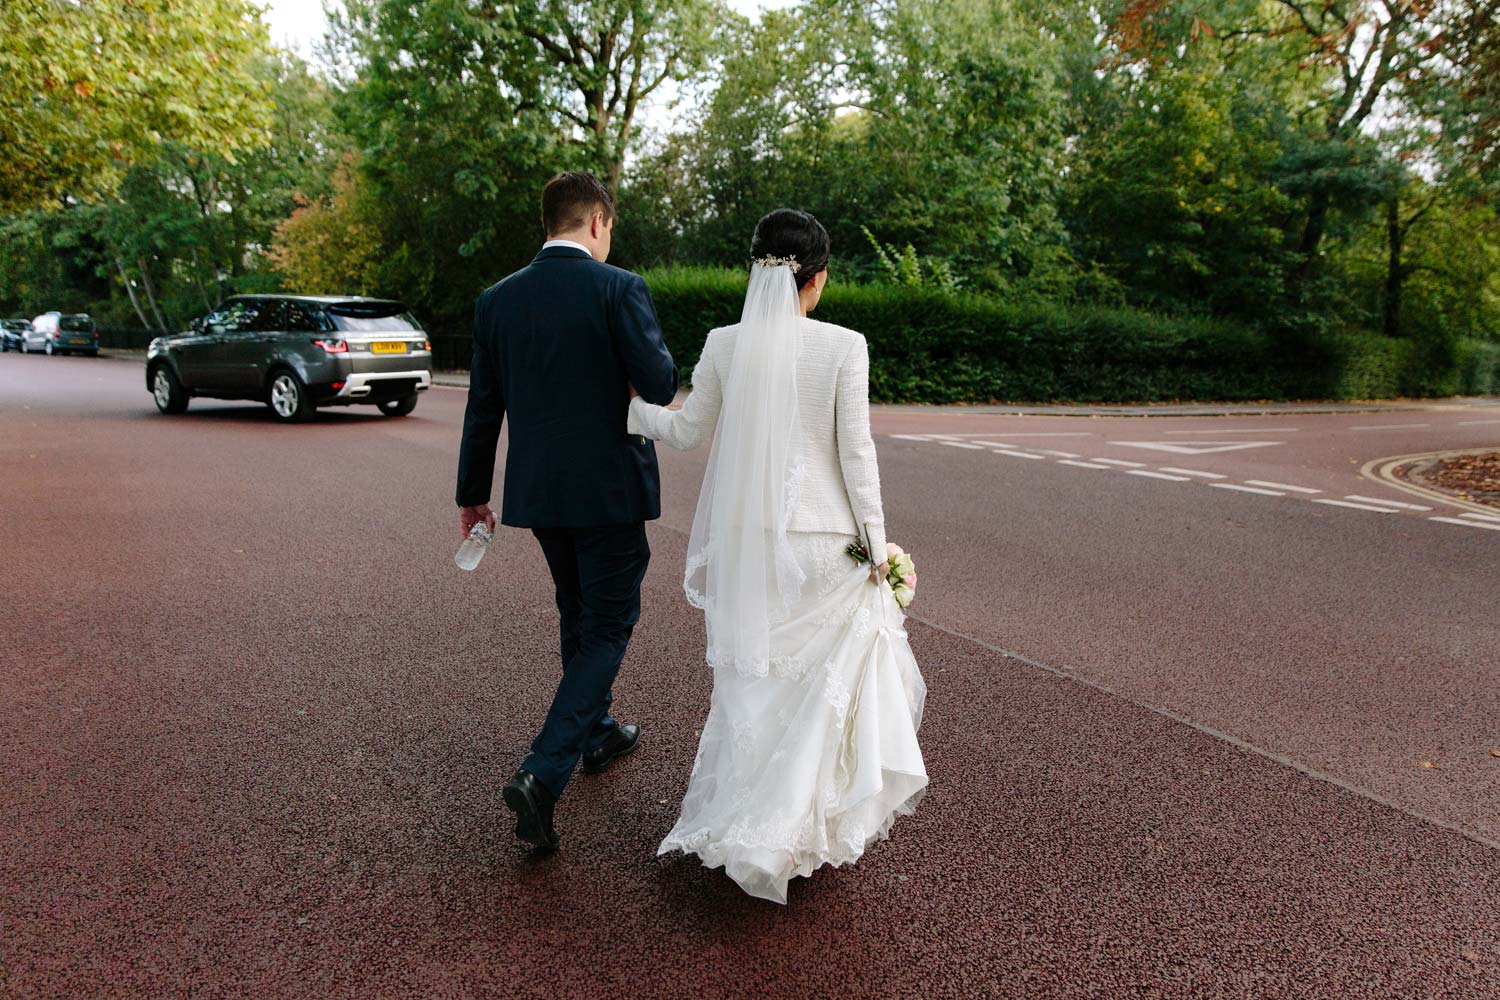 A newly married couple walk to the Langham Hotel for their wedding reception.